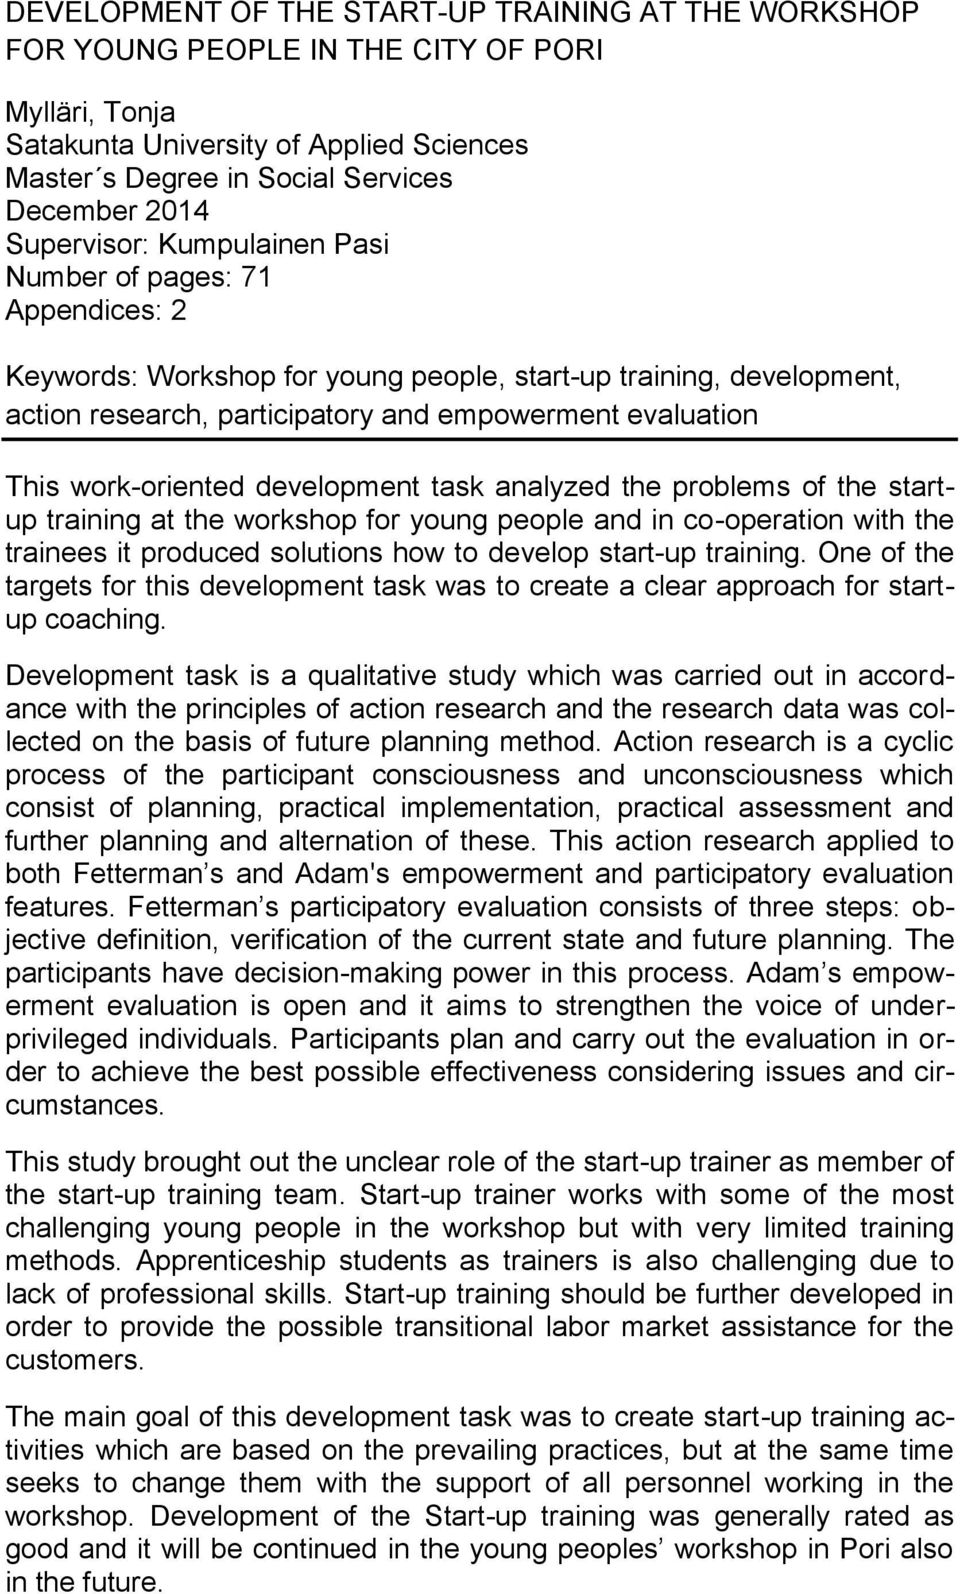 work-oriented development task analyzed the problems of the startup training at the workshop for young people and in co-operation with the trainees it produced solutions how to develop start-up